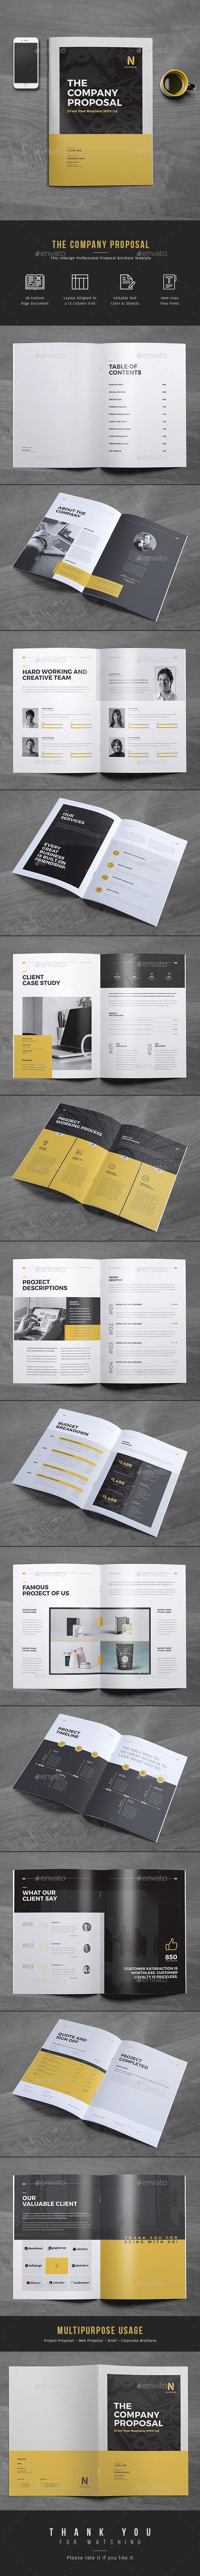 Proposal Template InDesign INDD. Download here: https://graphicriver.net/item/proposal/17186705?ref=ksioks